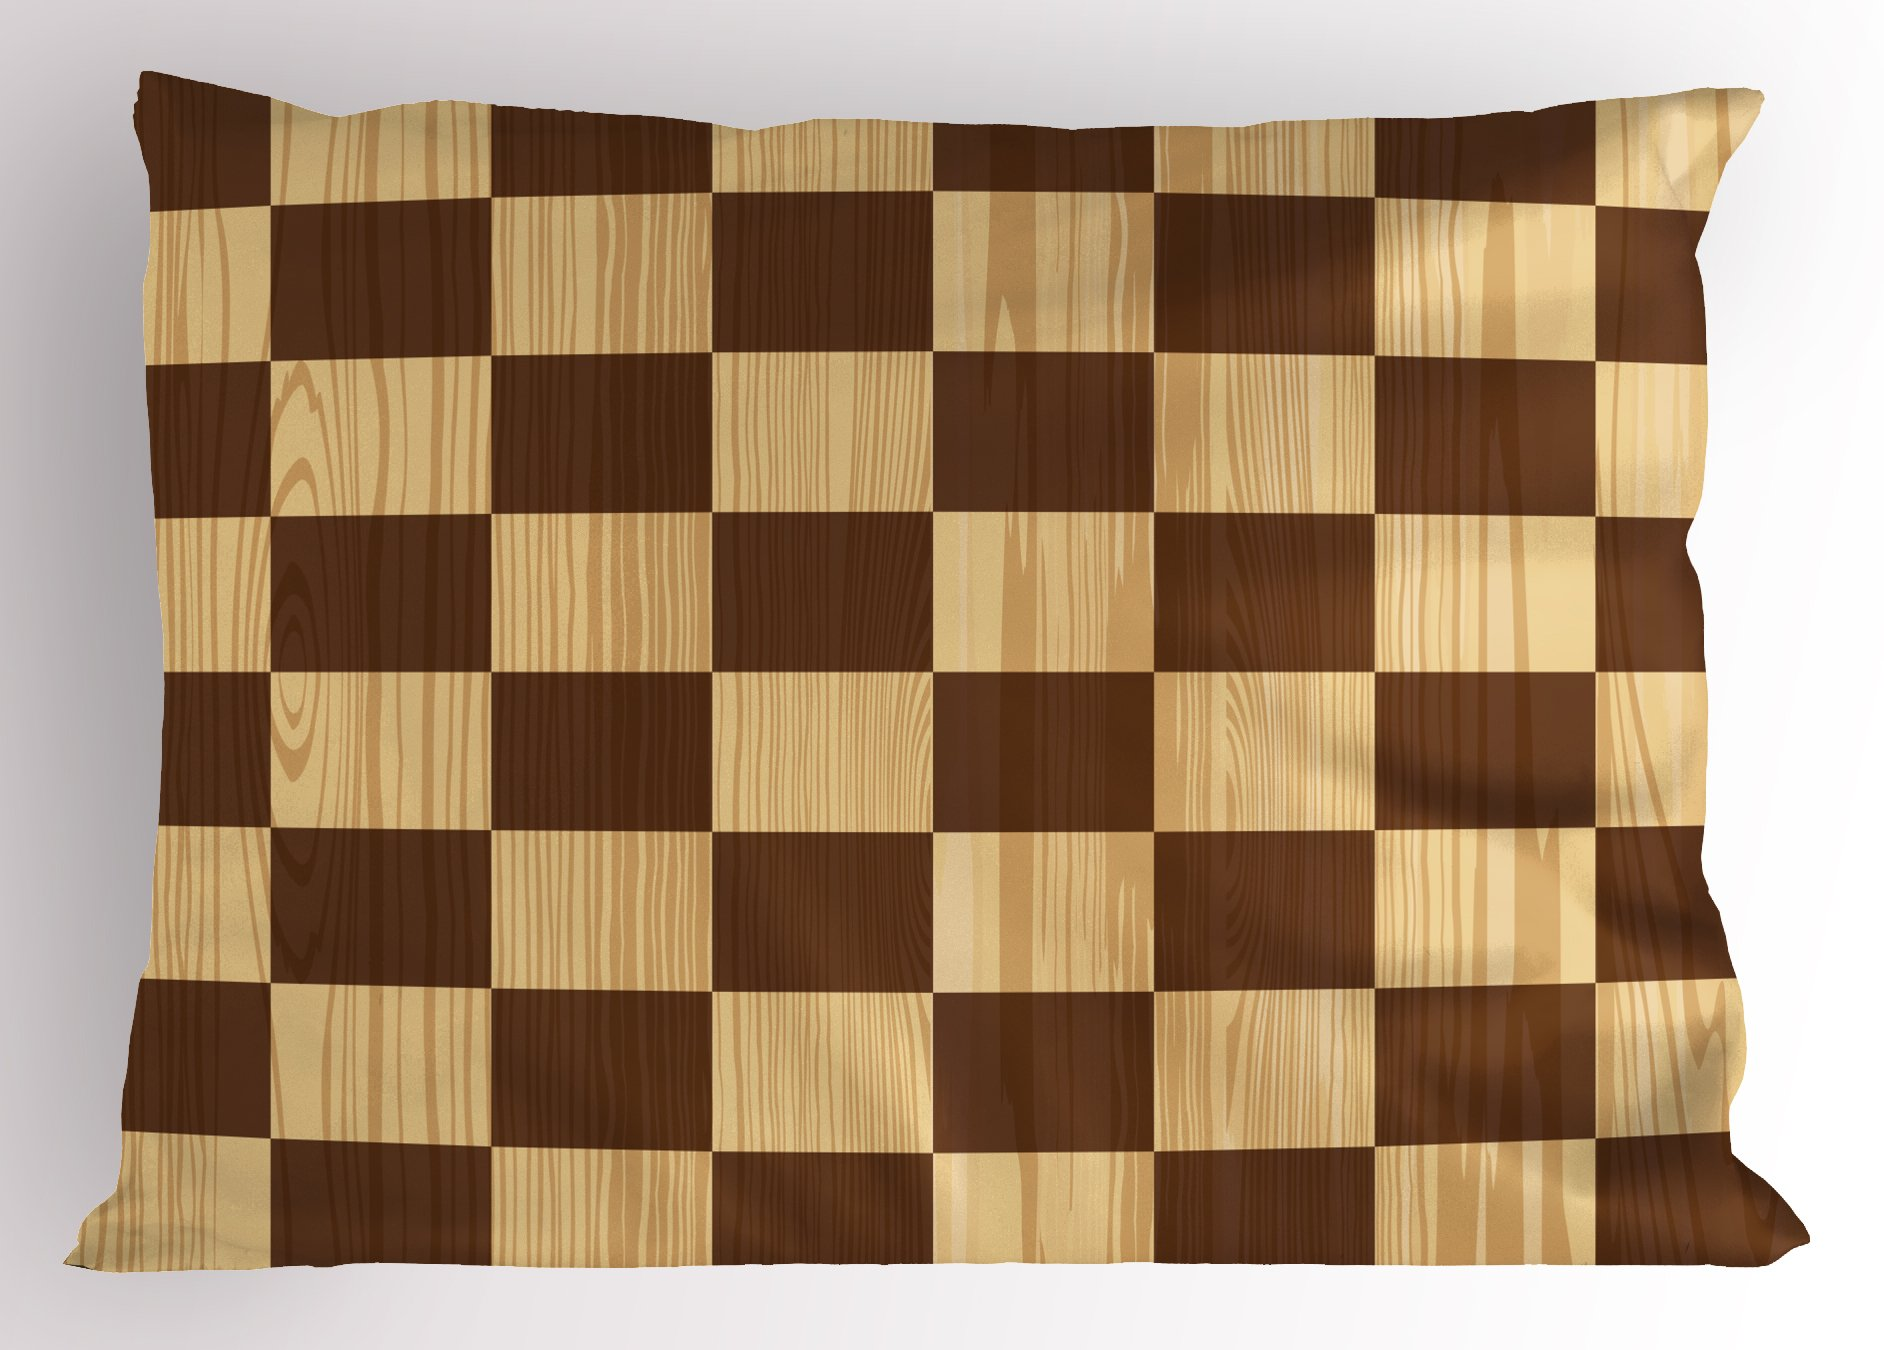 Ambesonne Checkered Pillow Sham, Empty Checkerboard Wooden Seem Mosaic Texture Image Chess Game Hobby Theme, Decorative Standard King Size Printed Pillowcase, 36 X 20 Inches, Brown Light Brown